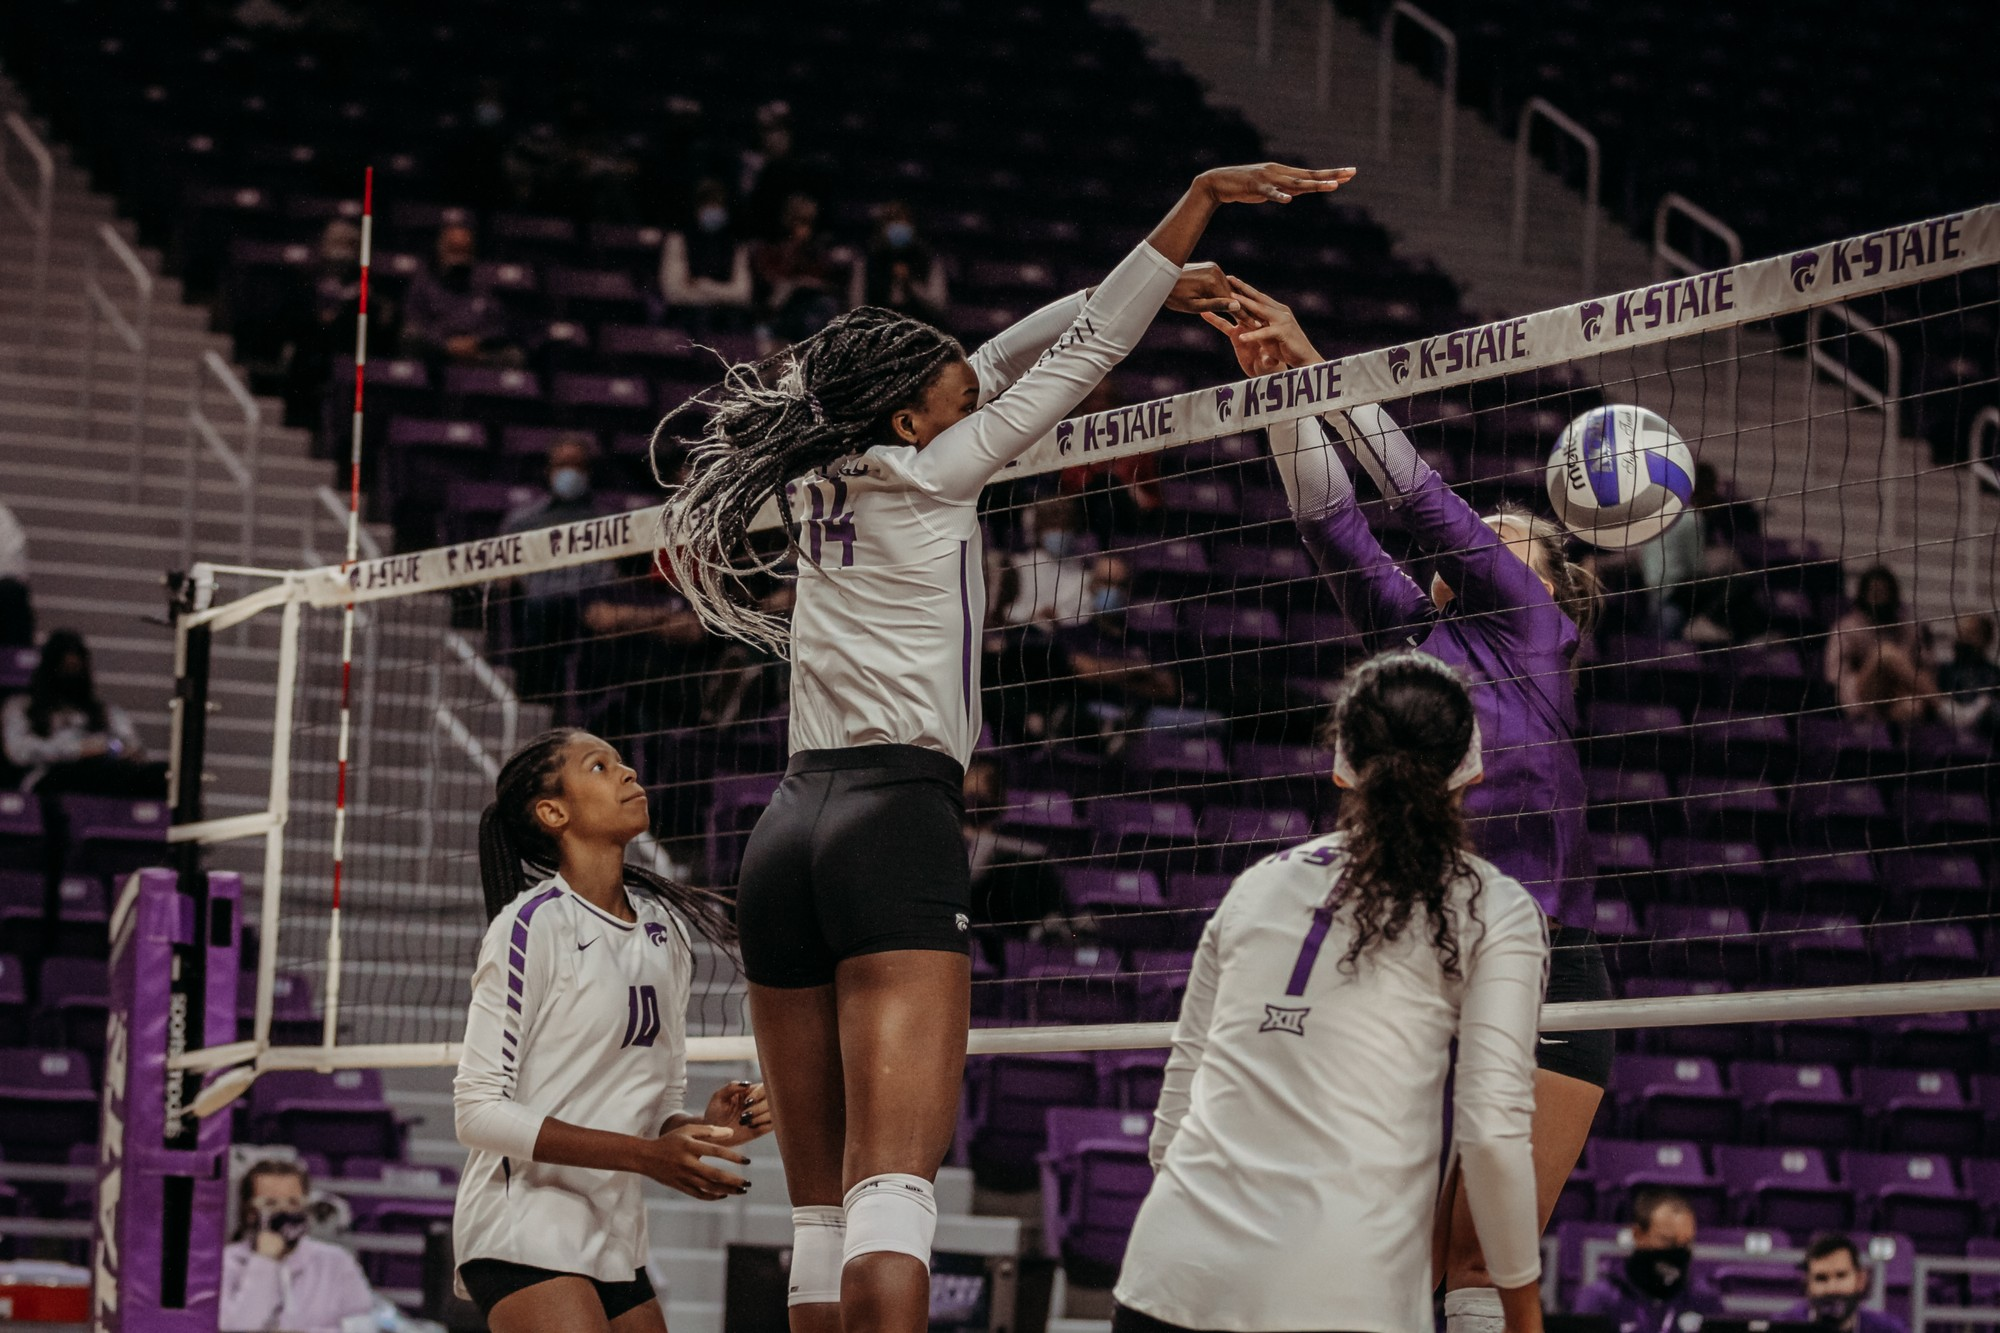 Volleyball trips for victory in the first game against TCU